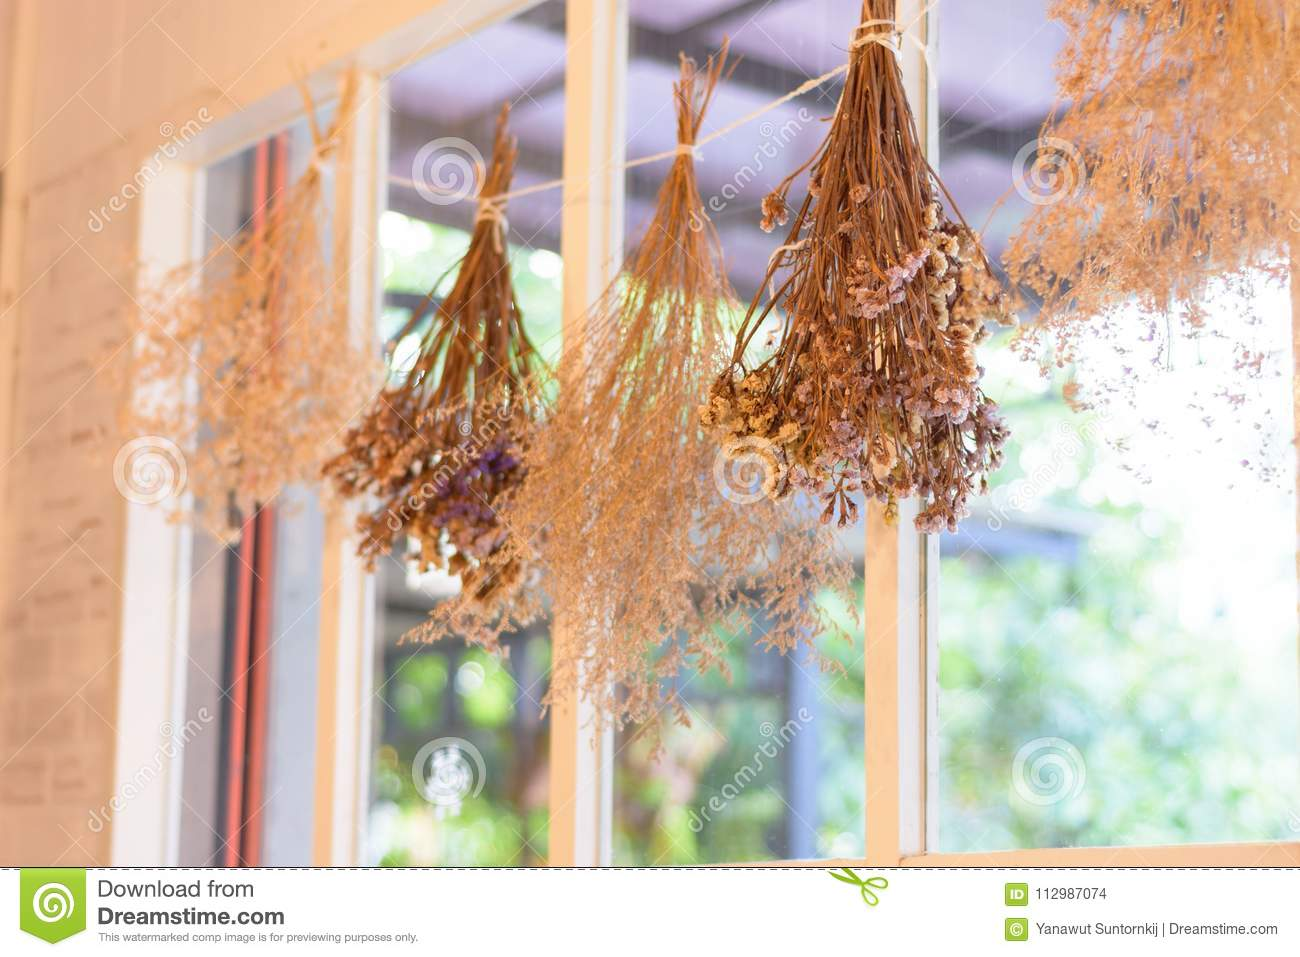 Bouquet Of Dry Flower And Grass Hanging On Wall Stock Photo Image Of Ancient Flower 112987074